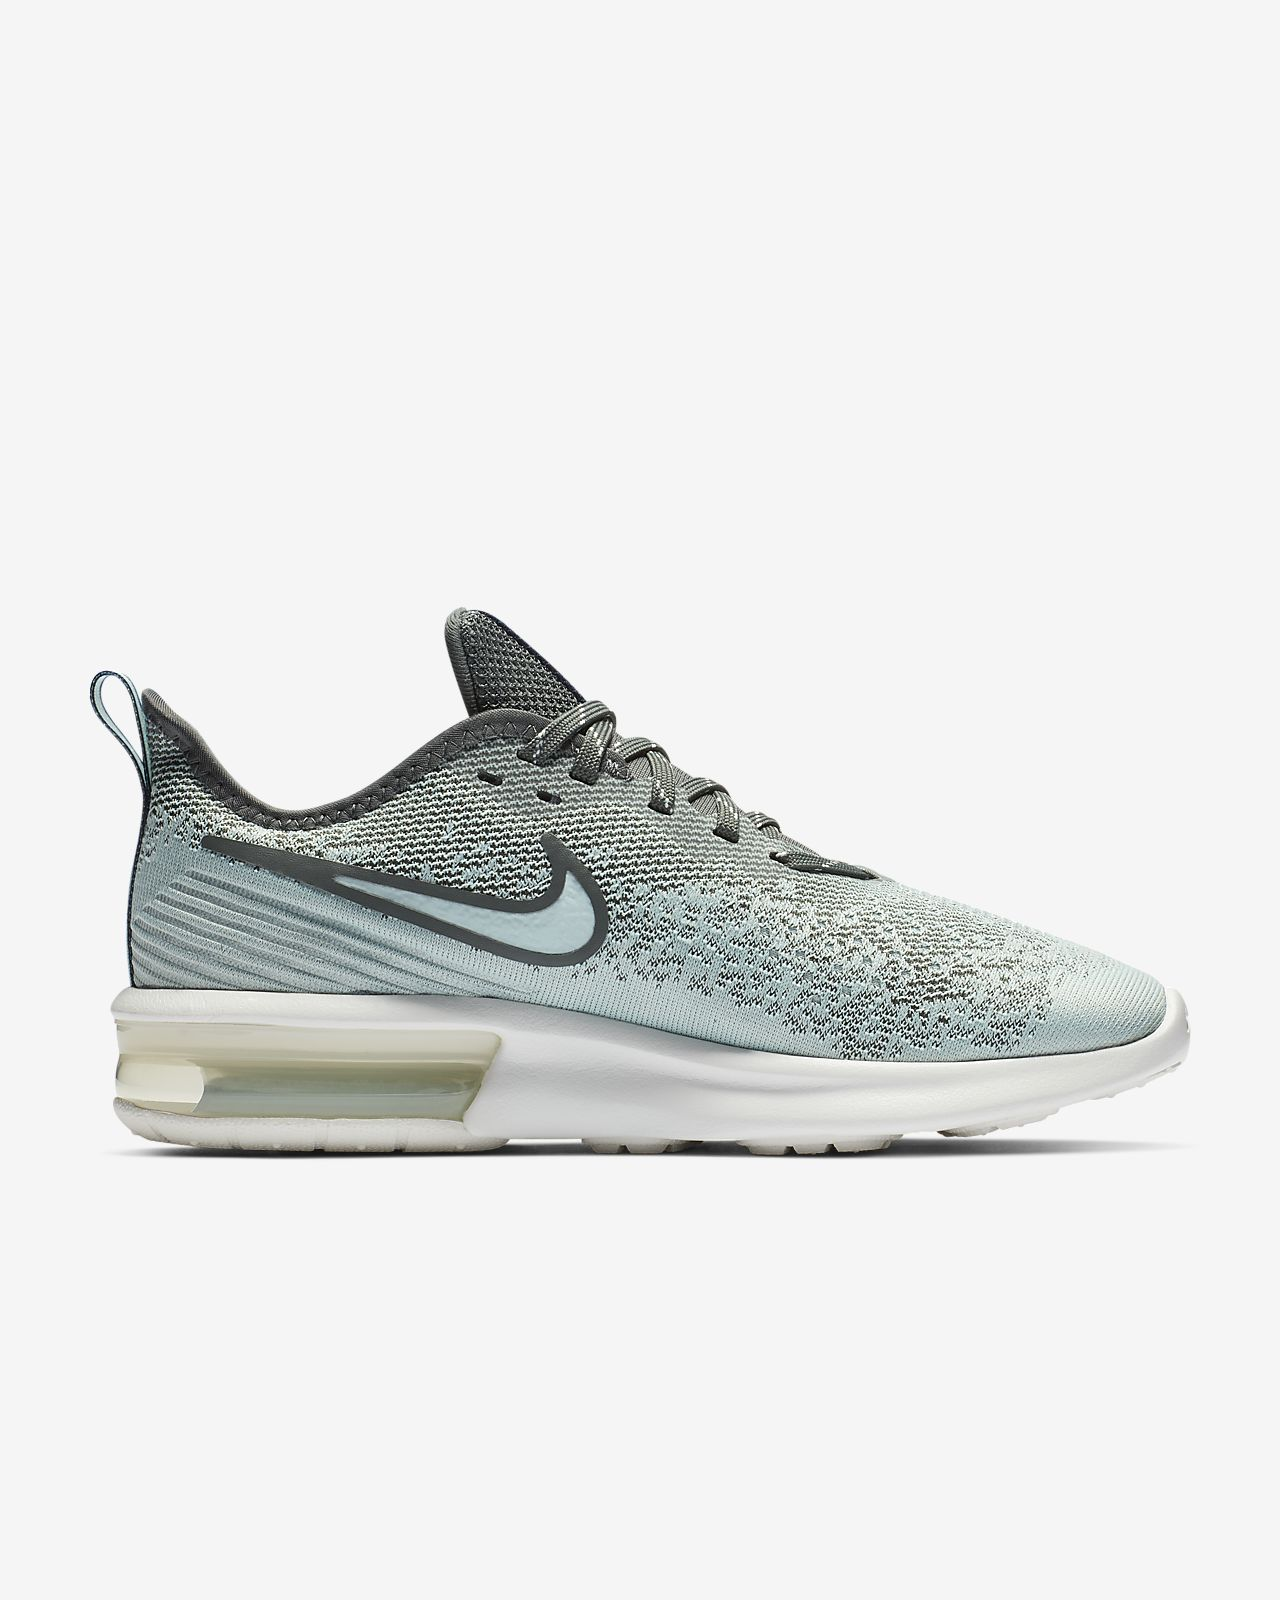 new product b132e 4efc3 ... Nike Air Max Sequent 4 Women s Shoe